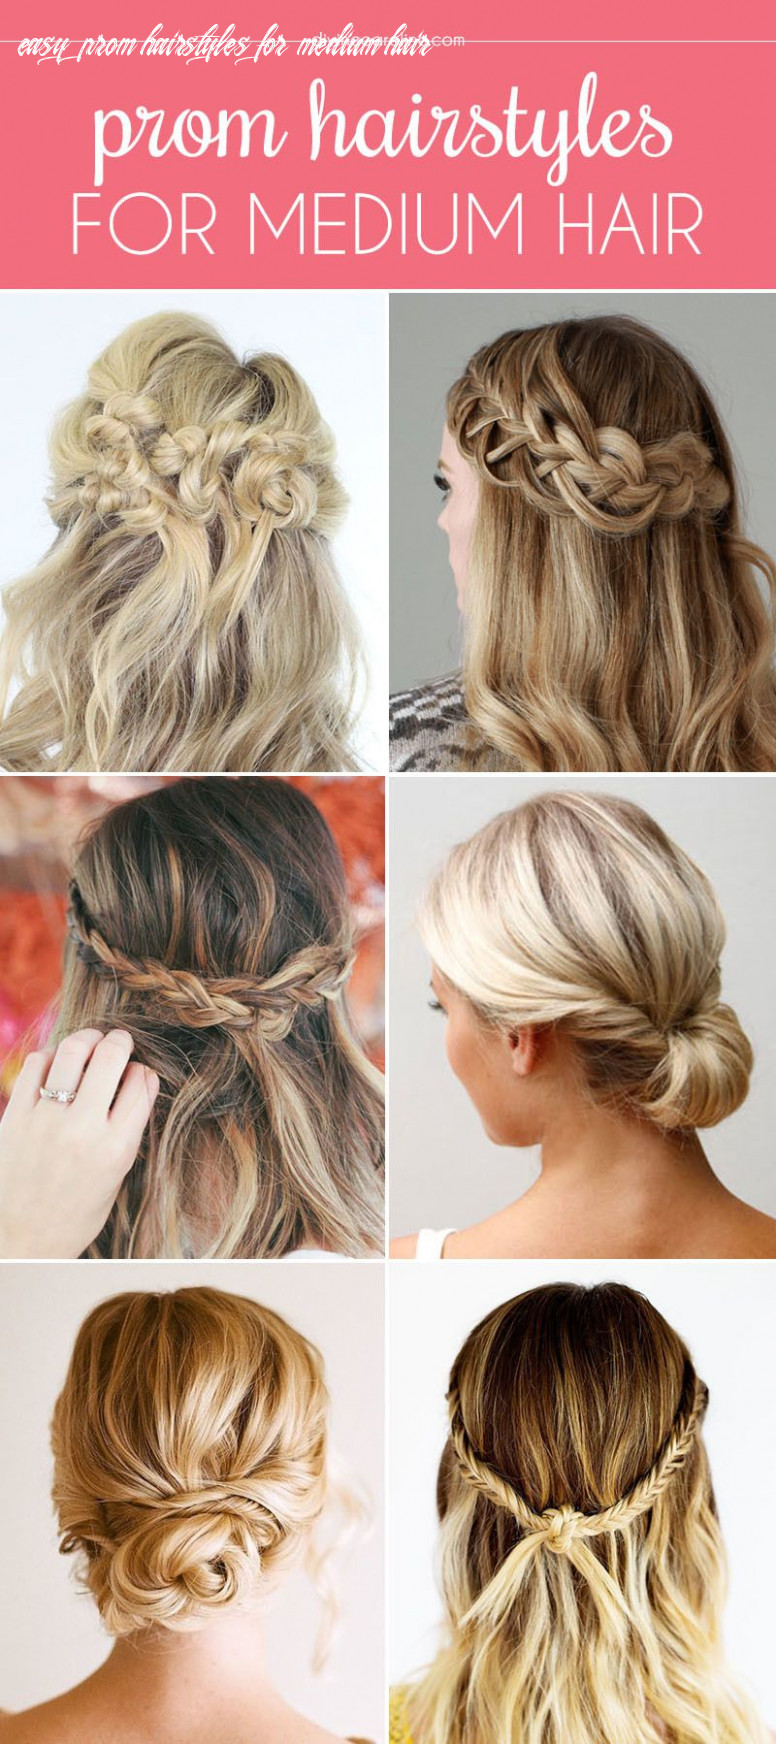 Our favorite prom hairstyles for medium length hair (with images